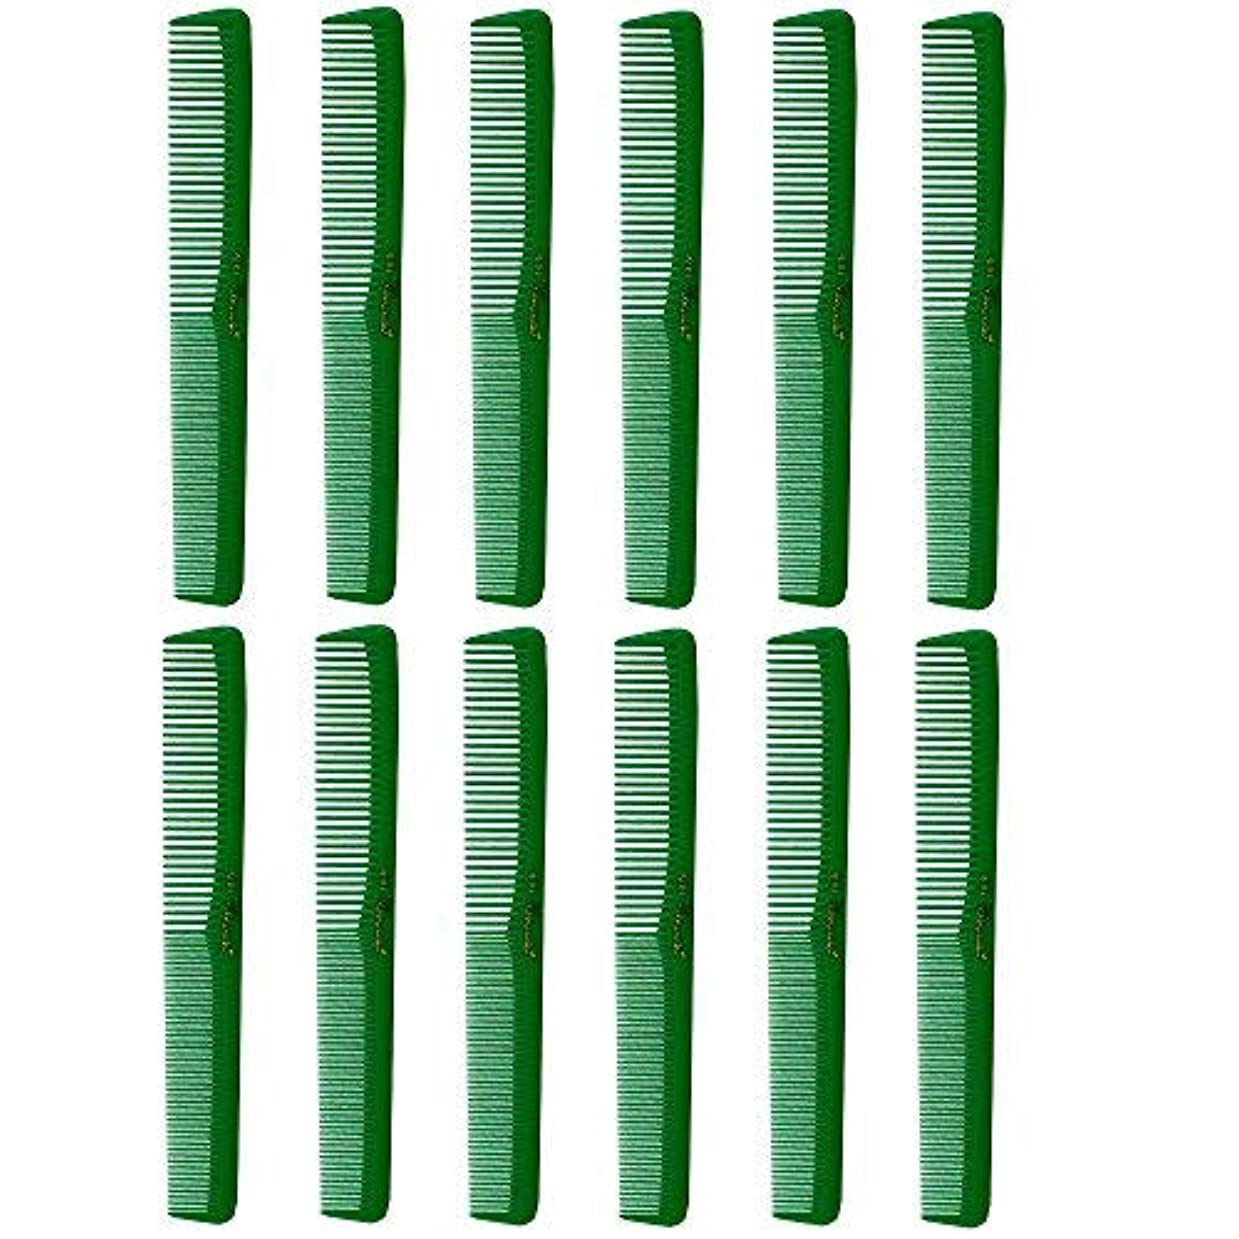 Barber Beauty Hair Cleopatra 400 All Purpose Combs (12 Pack) 12 x SB-C400-GREEN [並行輸入品]